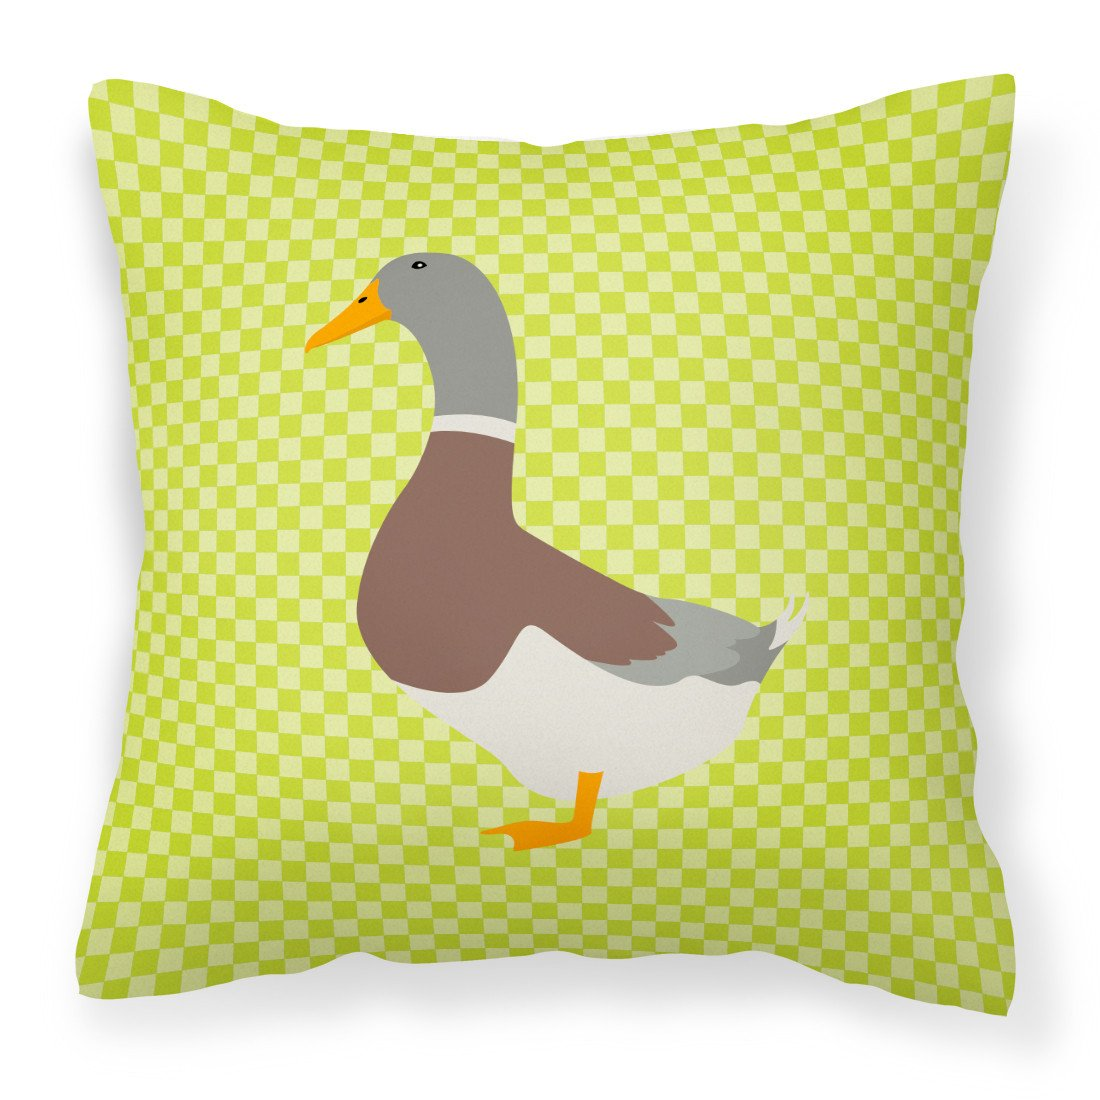 Saxony Sachsenente Duck Green Fabric Decorative Pillow BB7689PW1818 by Caroline's Treasures